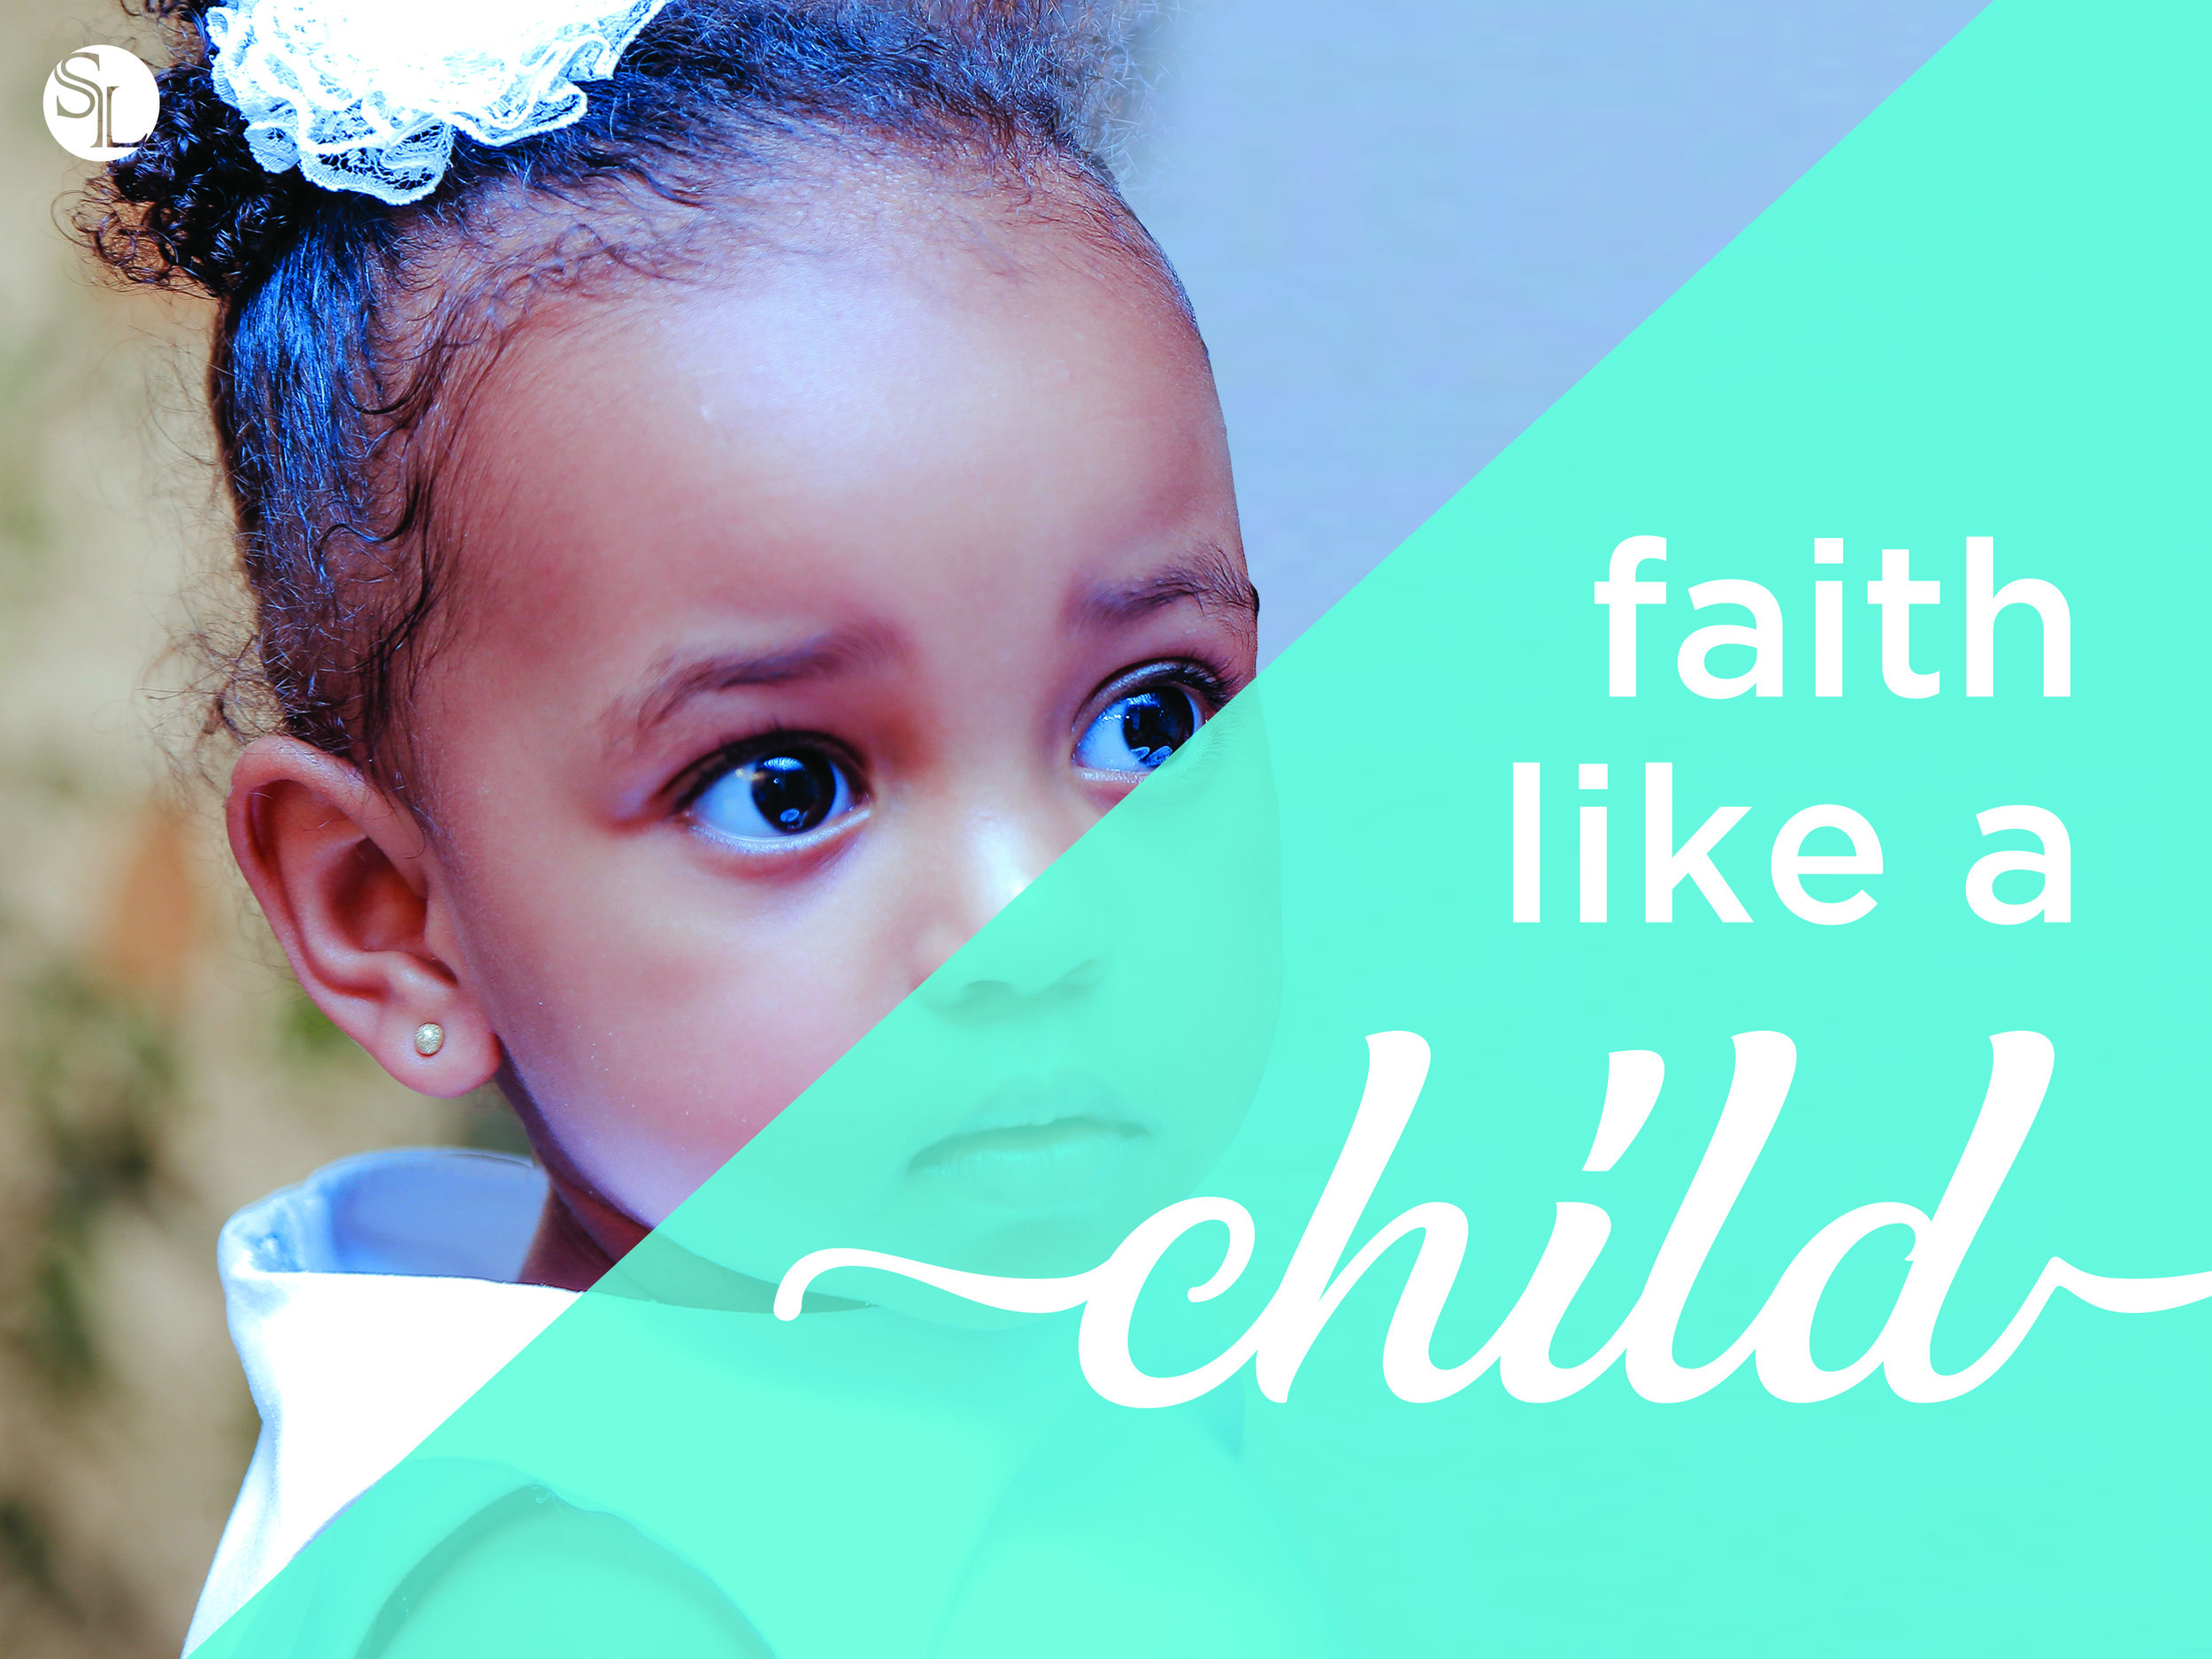 Faith like a child-3 title.jpg